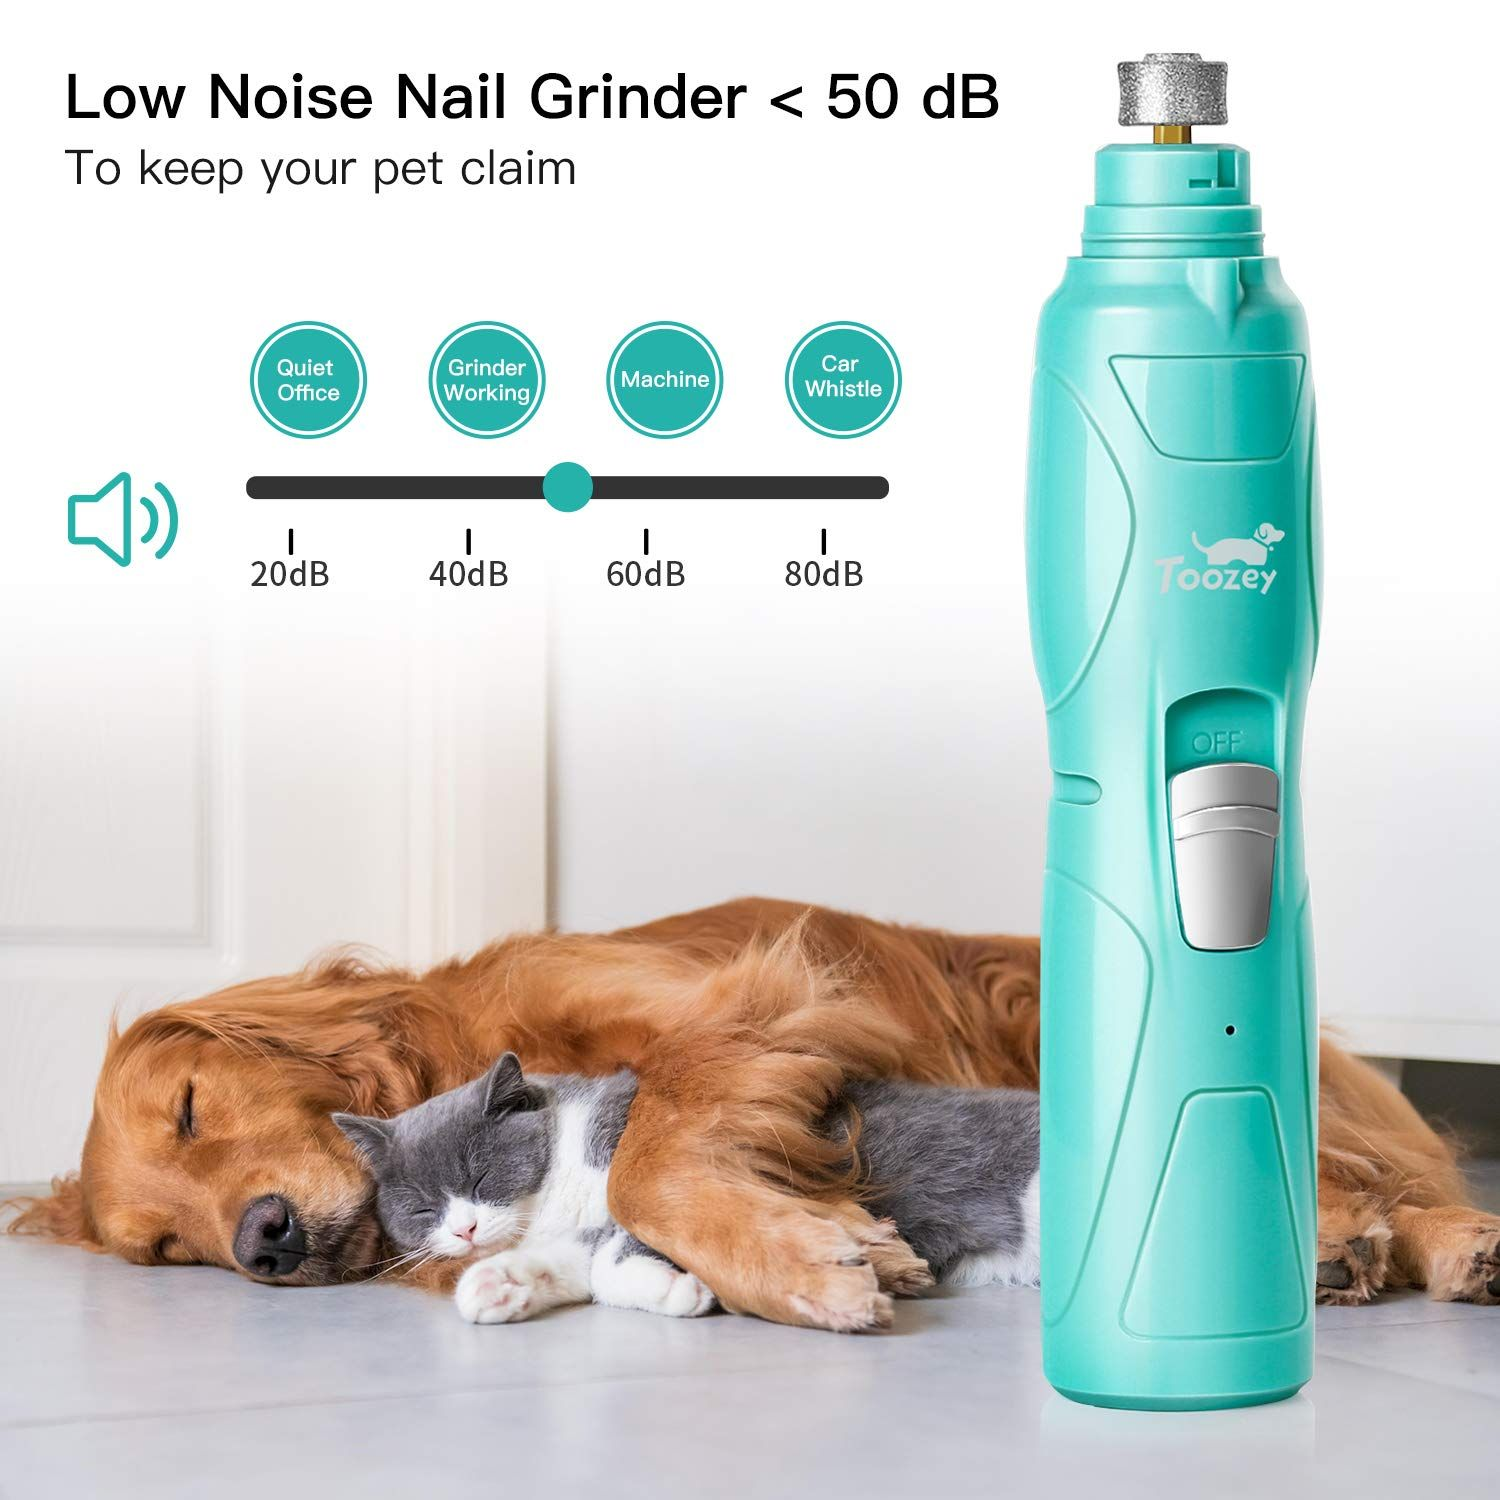 Rechargeable Dog Nail Grinder Upgraded Click Image For More Details It Is An Affiliate Link To Amazon In 2020 Dog Grooming Supplies Dog Grooming Dog Nails